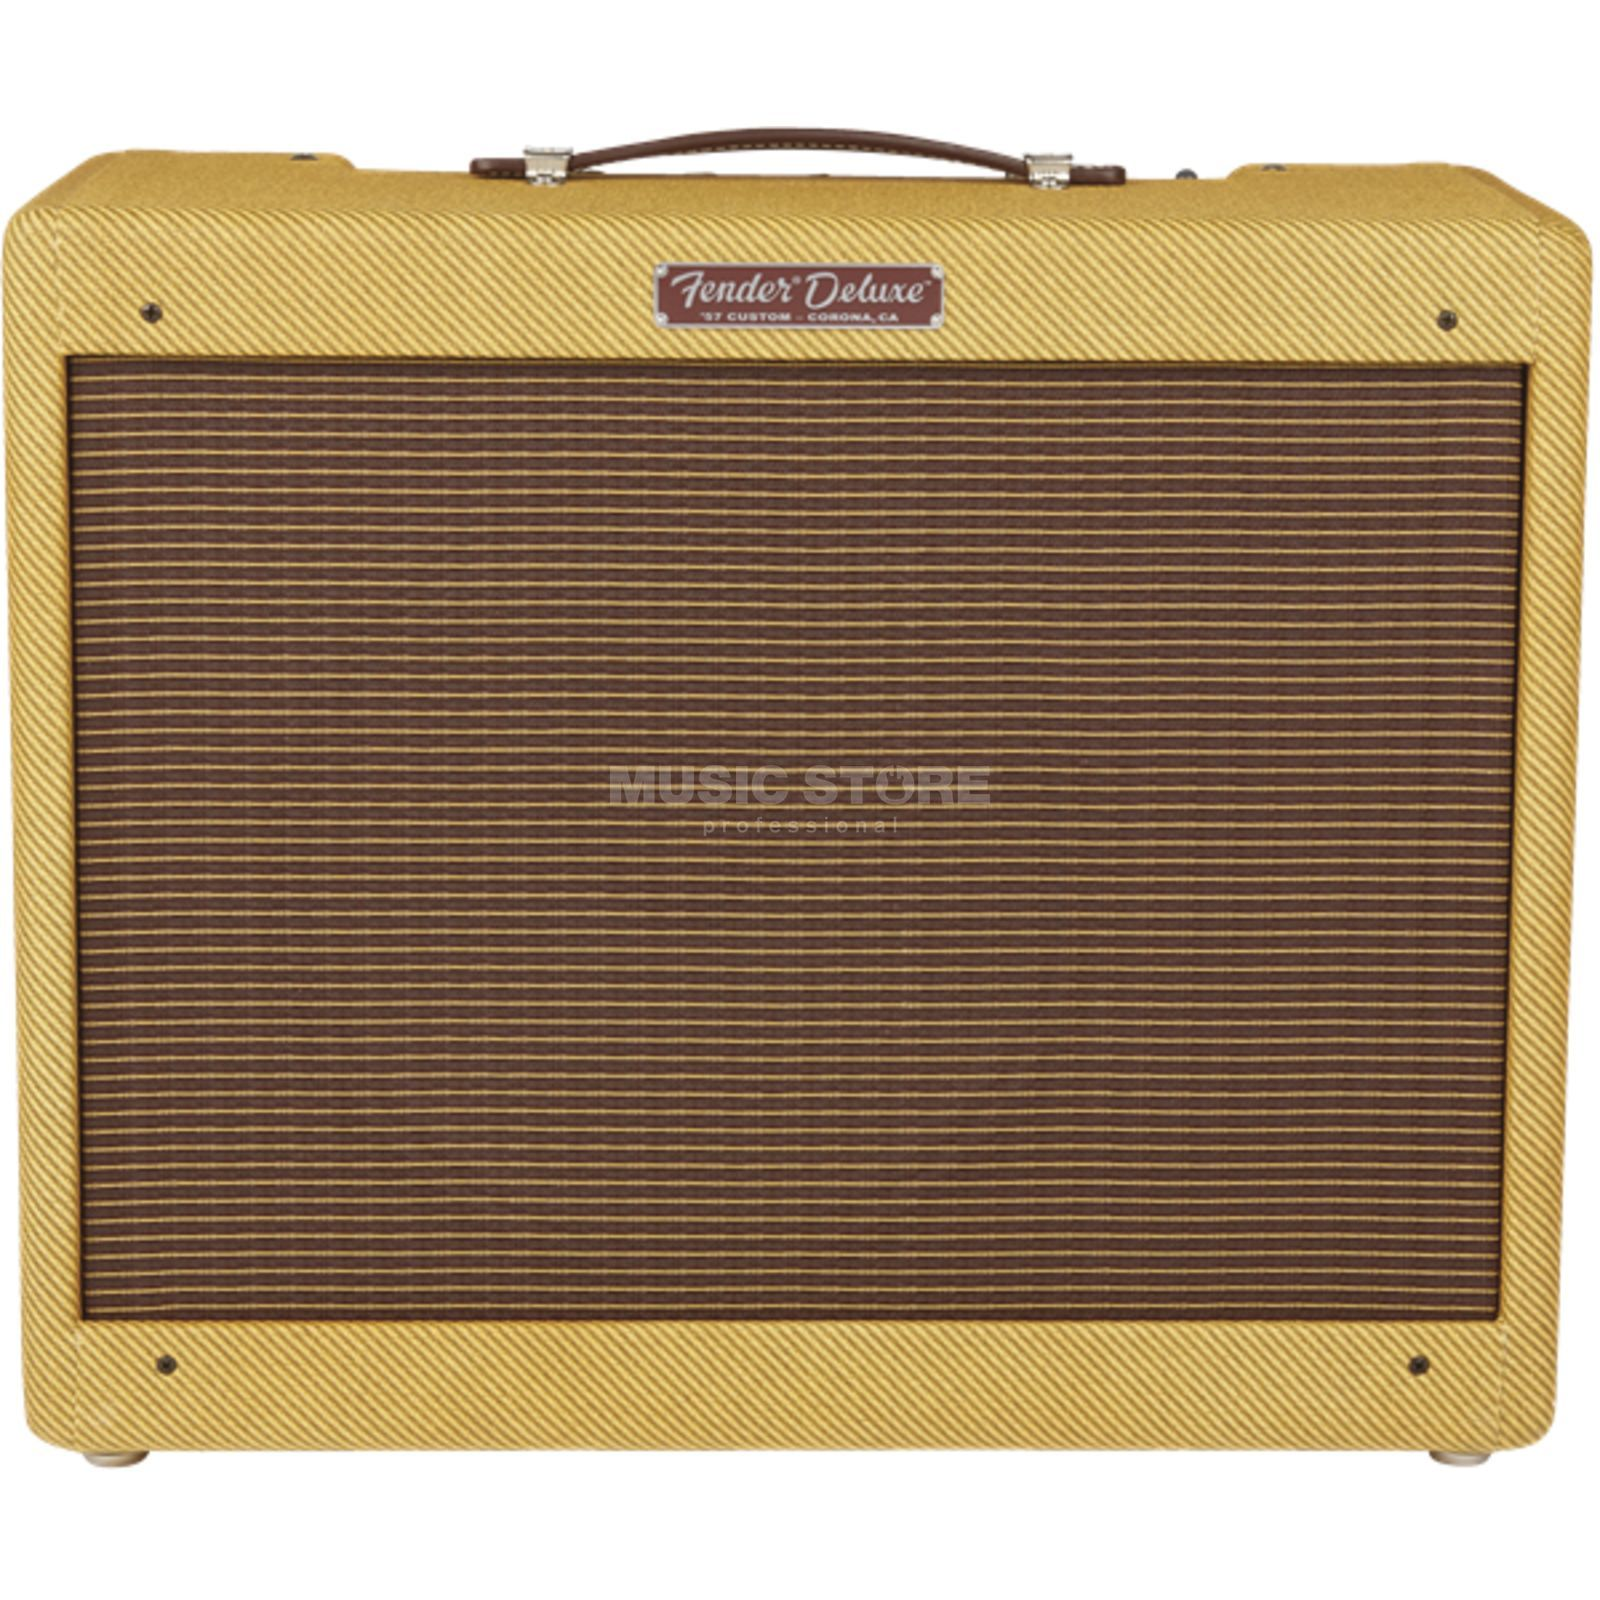 Fender '57 Custom Deluxe Product Image